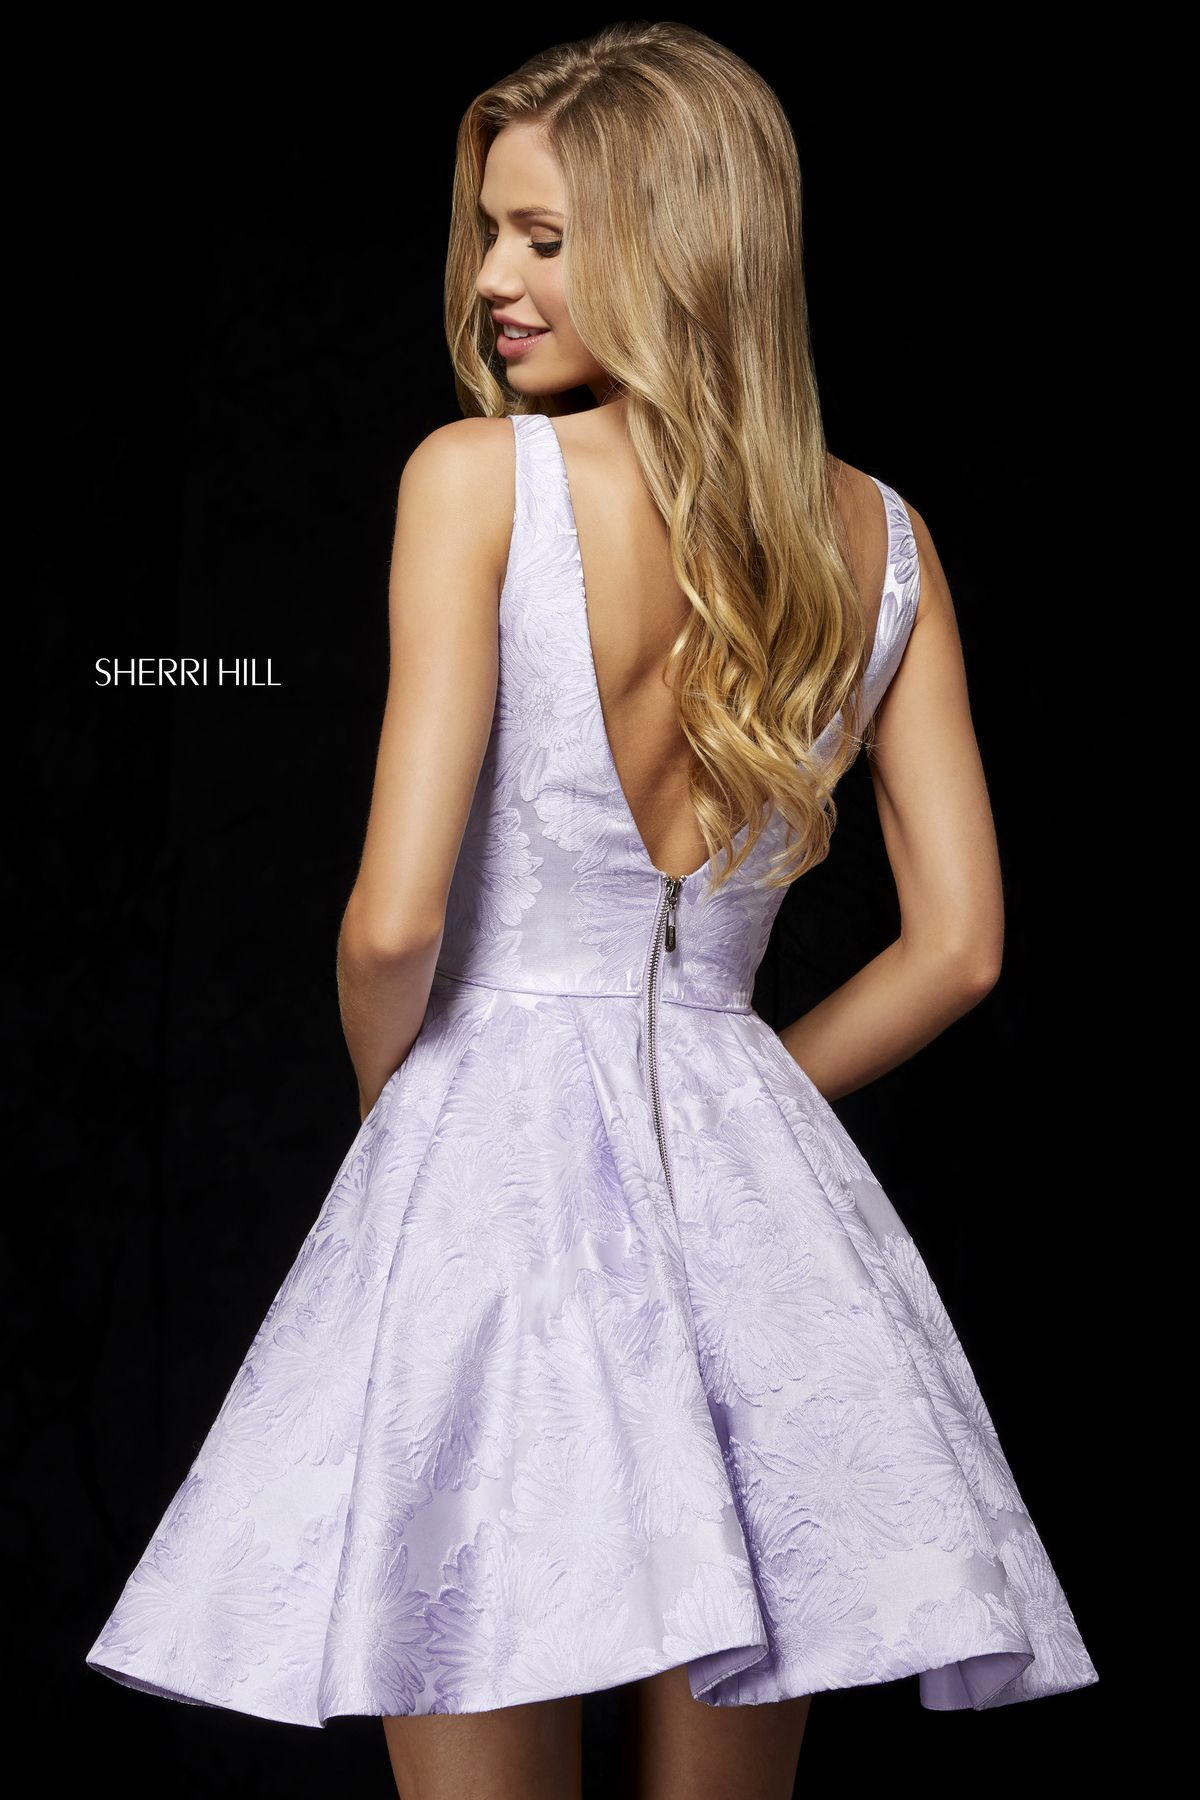 e5439764c7 Style  52177 – Sherri Hill Sherri Hill Homecoming Dresses